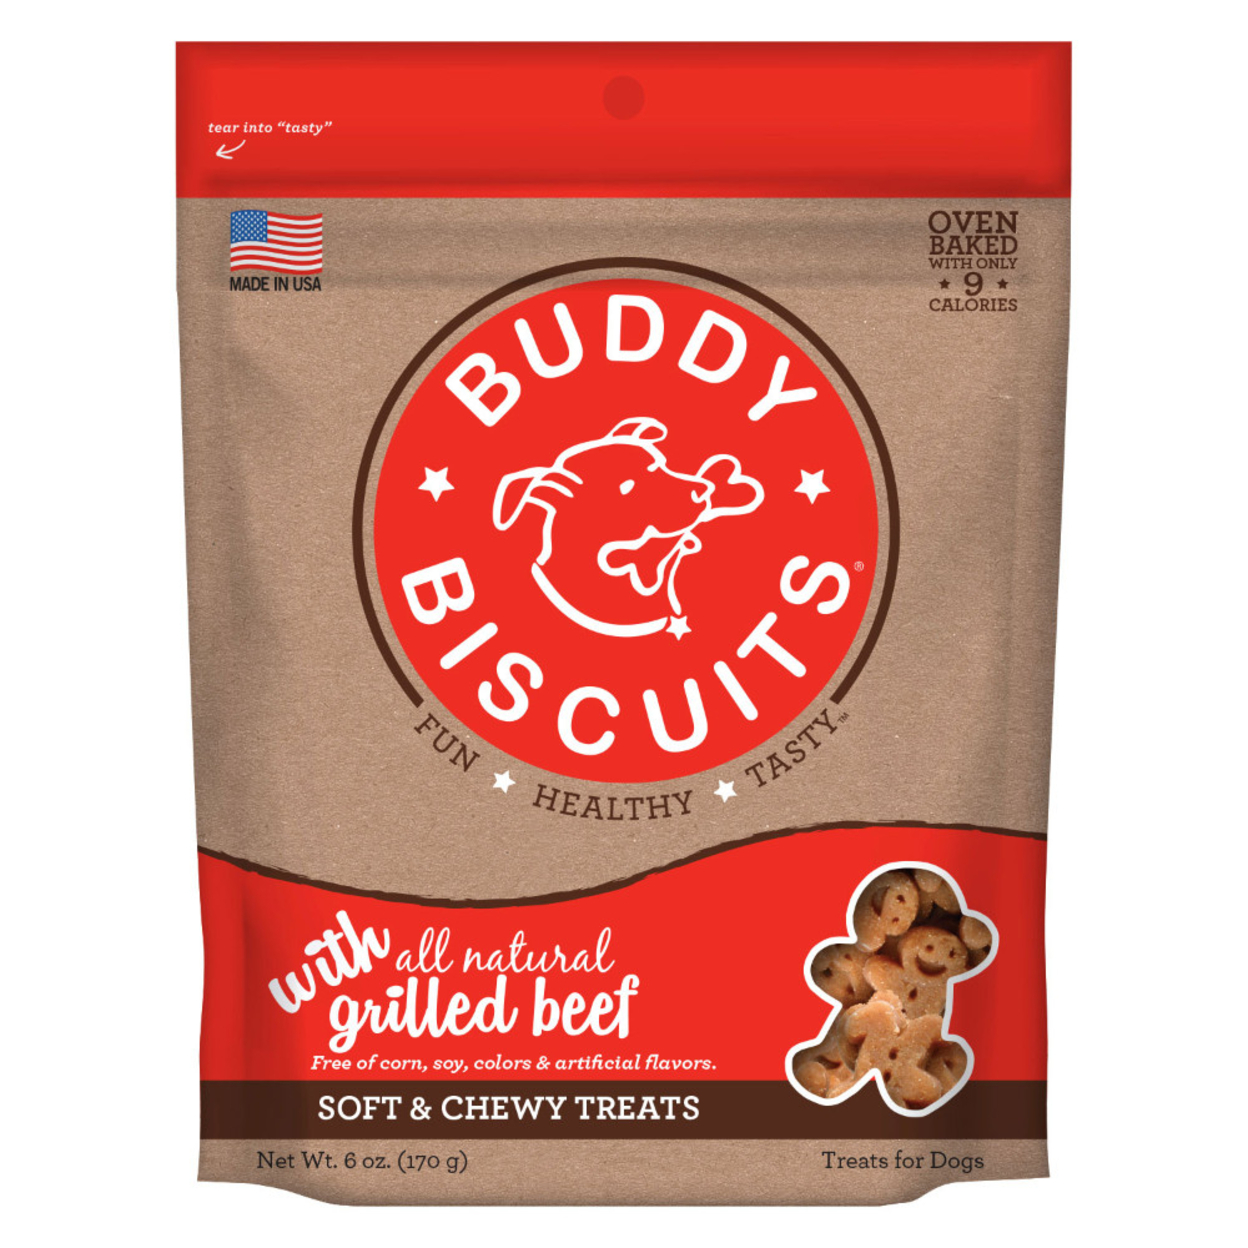 Cloud Star Soft & Chewy Buddy Biscuits Dog Treats, Grilled Beef, (Pack of 4) 59d009af2a00e46d613d183a